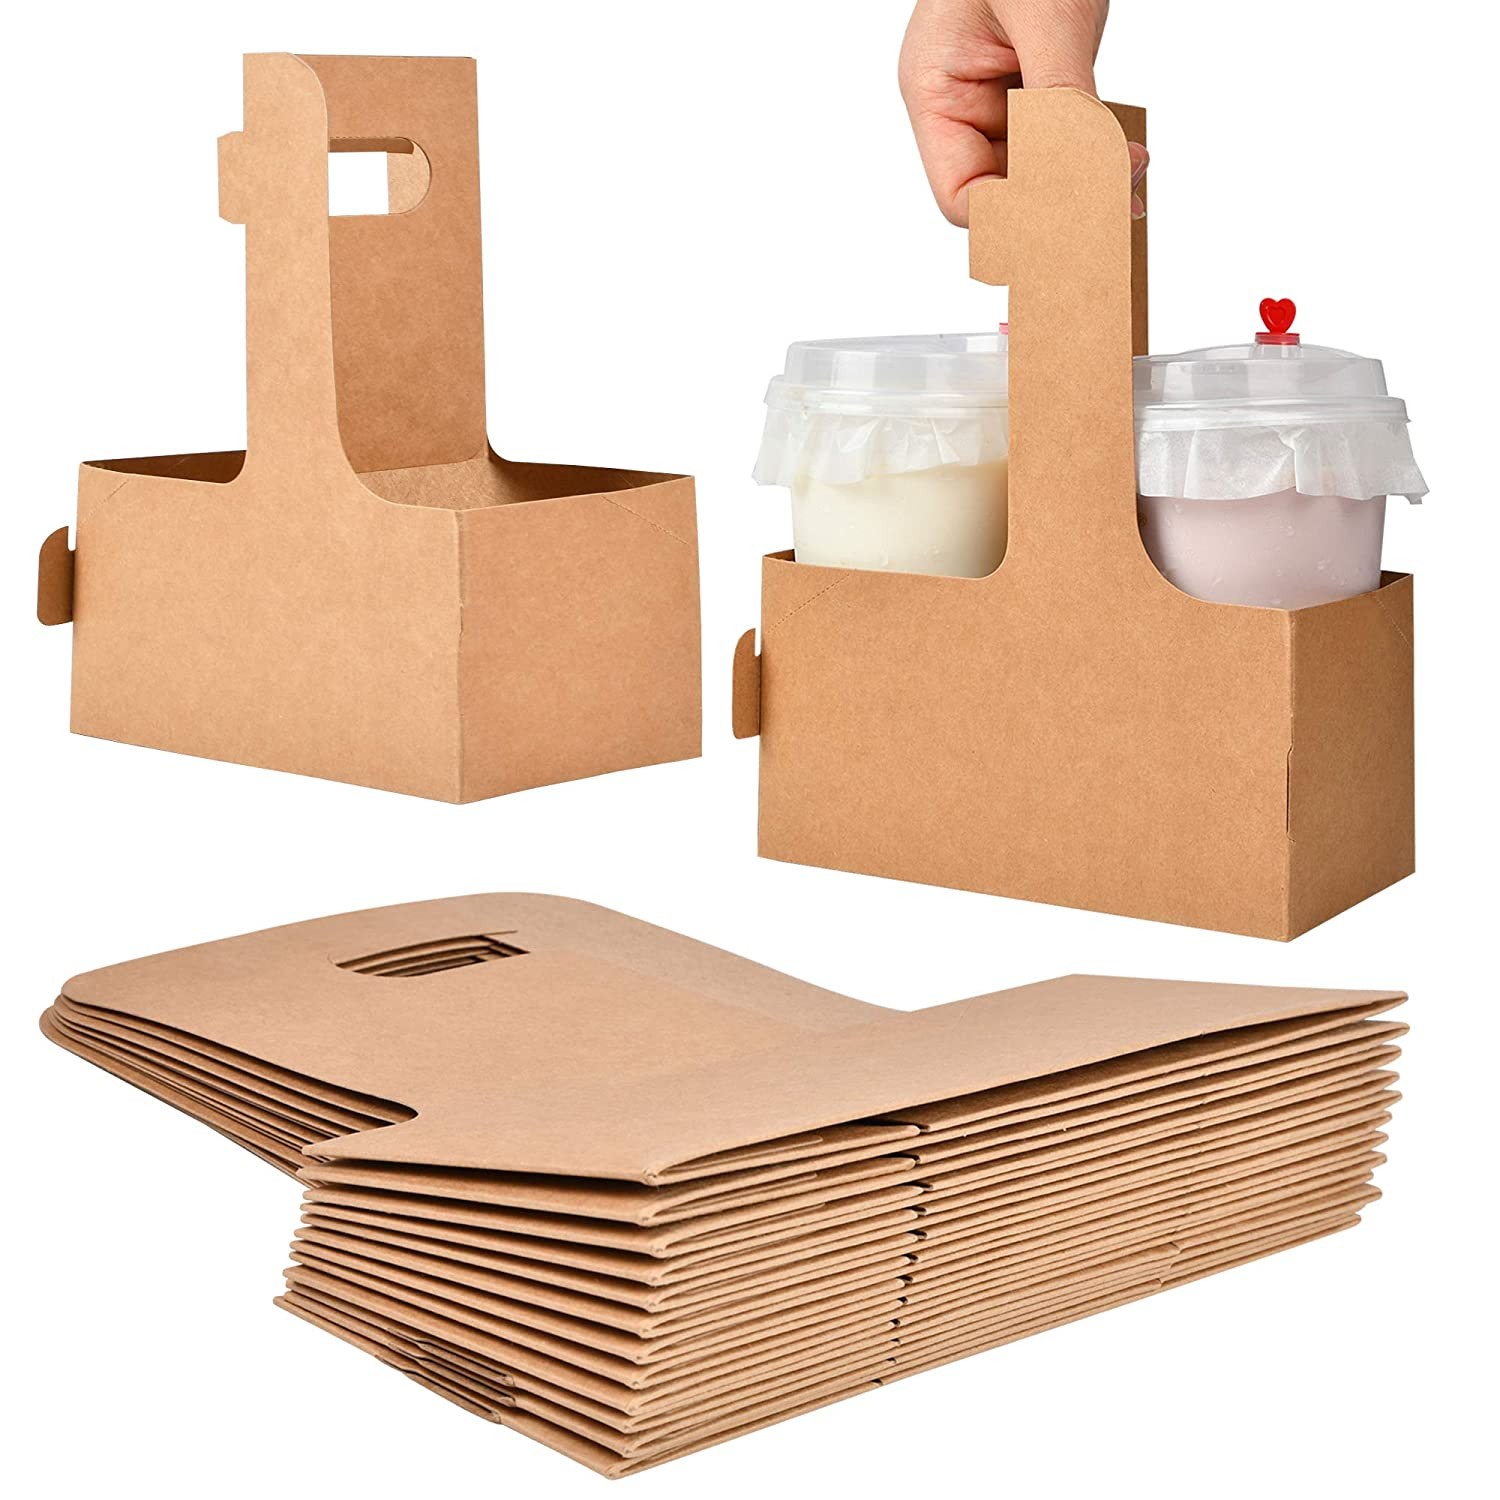 2 Cup Disposable Drink Carrier with Handle, Supkiir Kraft Paperboard Cup Holder for Hot or Cold Drinks, to Go Coffee Cup Holder for Food Delivery Service, 20 Count